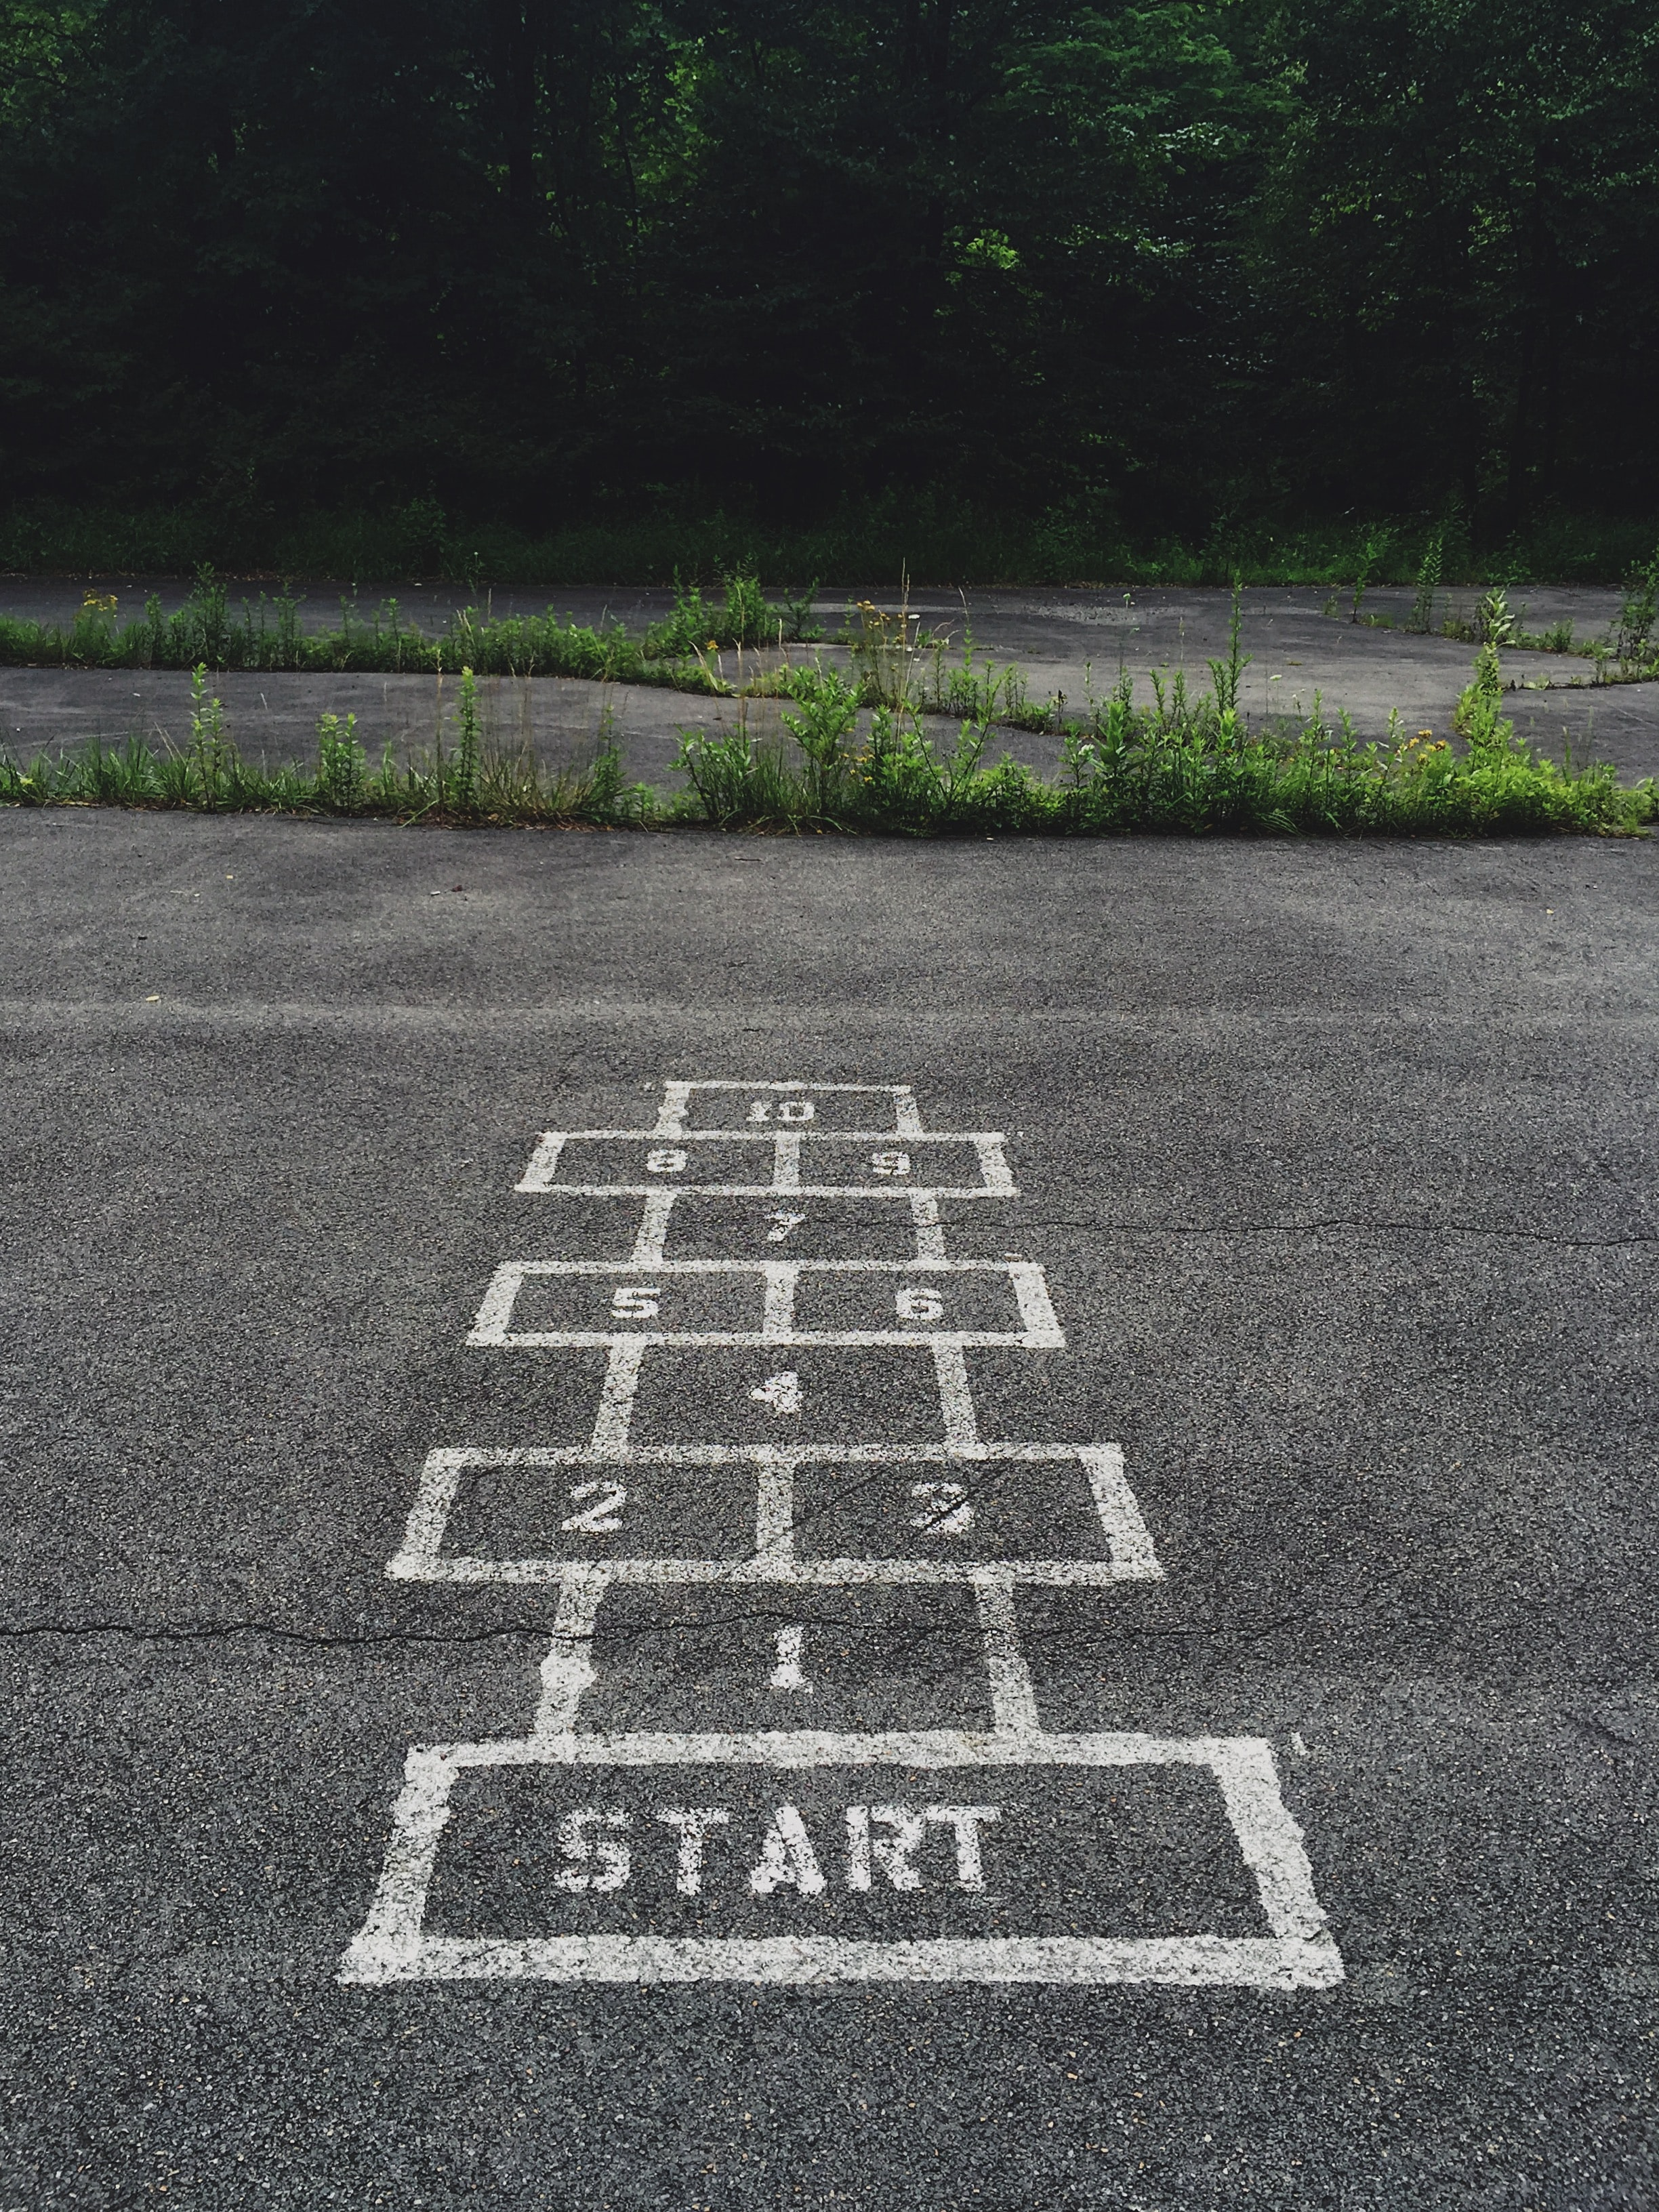 """A hopscotch grid painted on asphalt with the word """"Start"""" painted into the first block."""